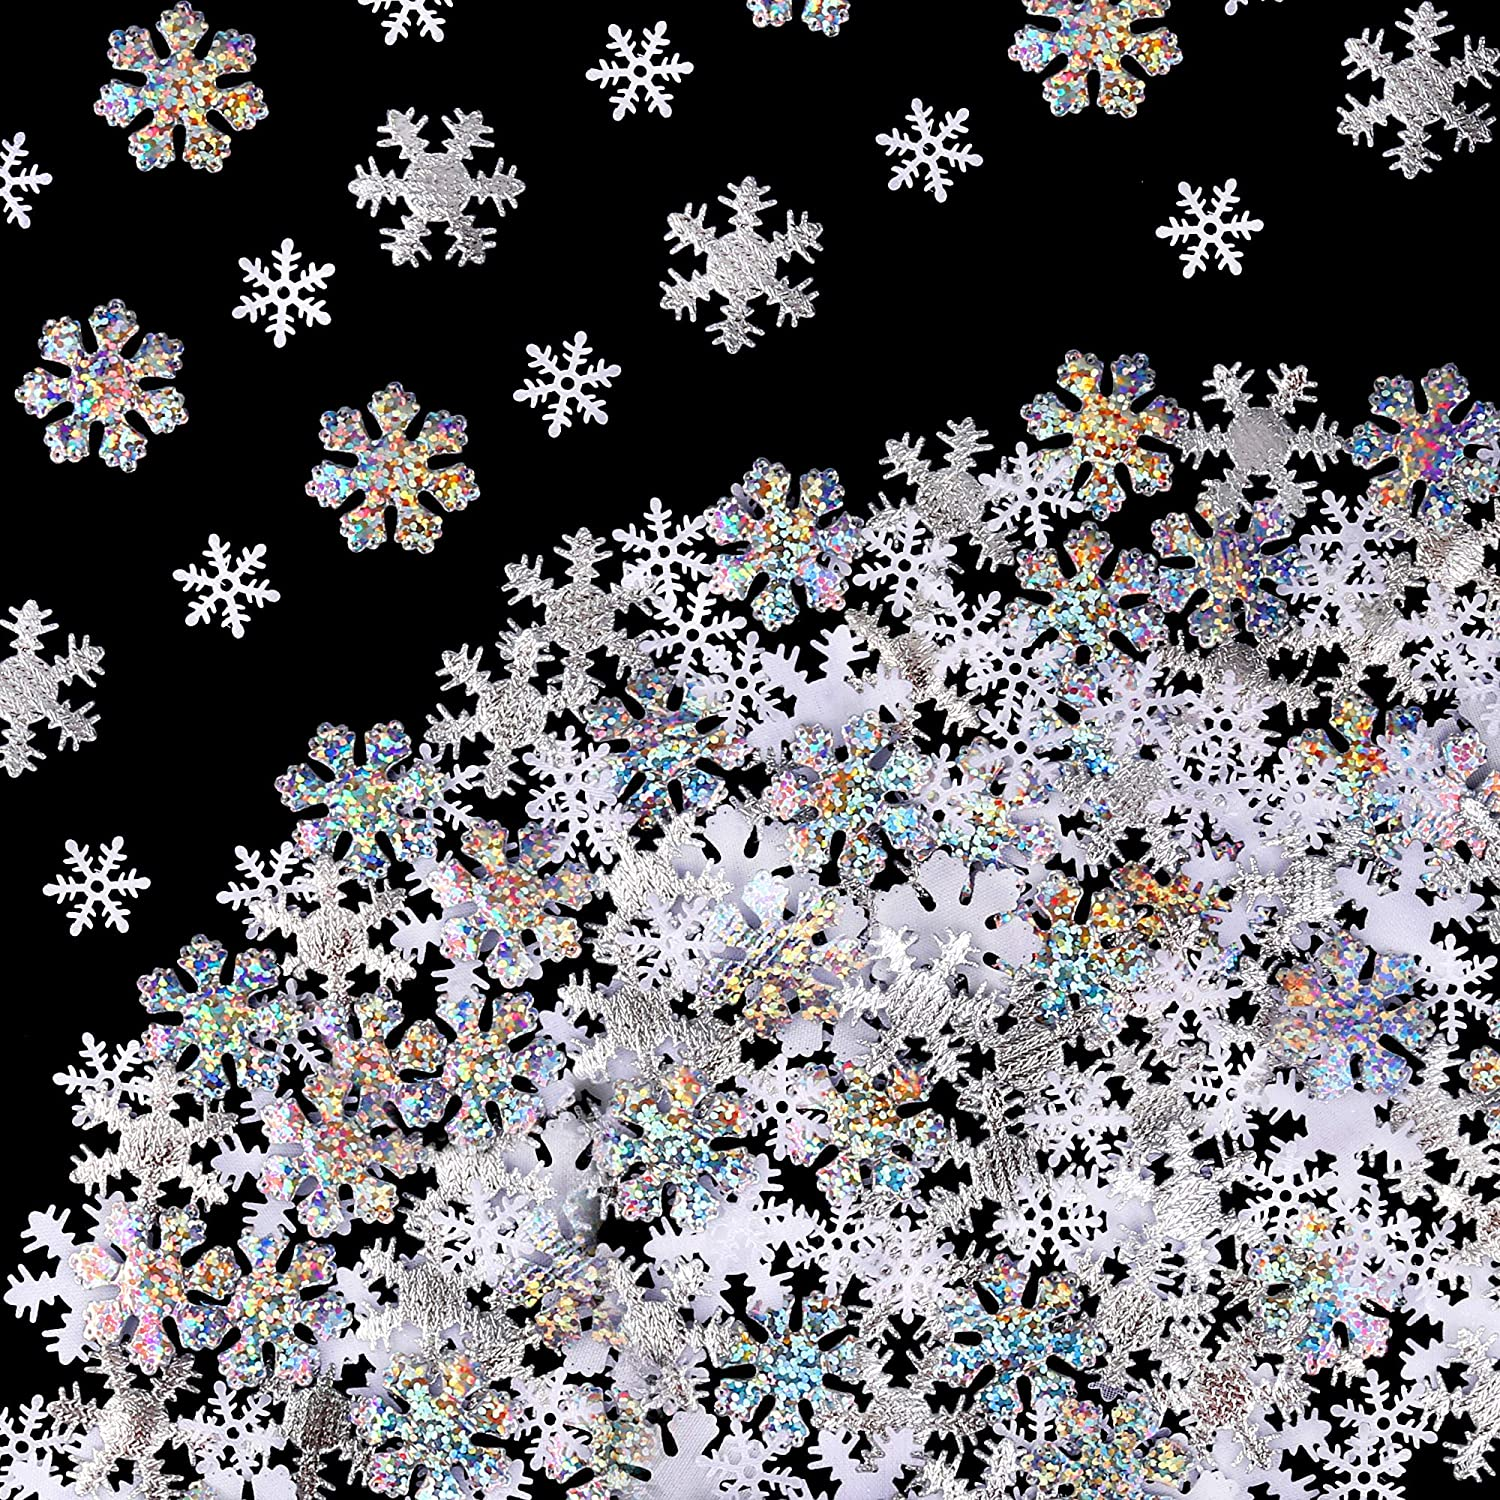 Christmas Snowflake Confetti Decoration(300pcs),Konsait Large Shimmer Snowflakes Cake Table Confetti for Xmas Party Decor Accessories winter wedding happy new year Arts Crafts party Decoration Supplies